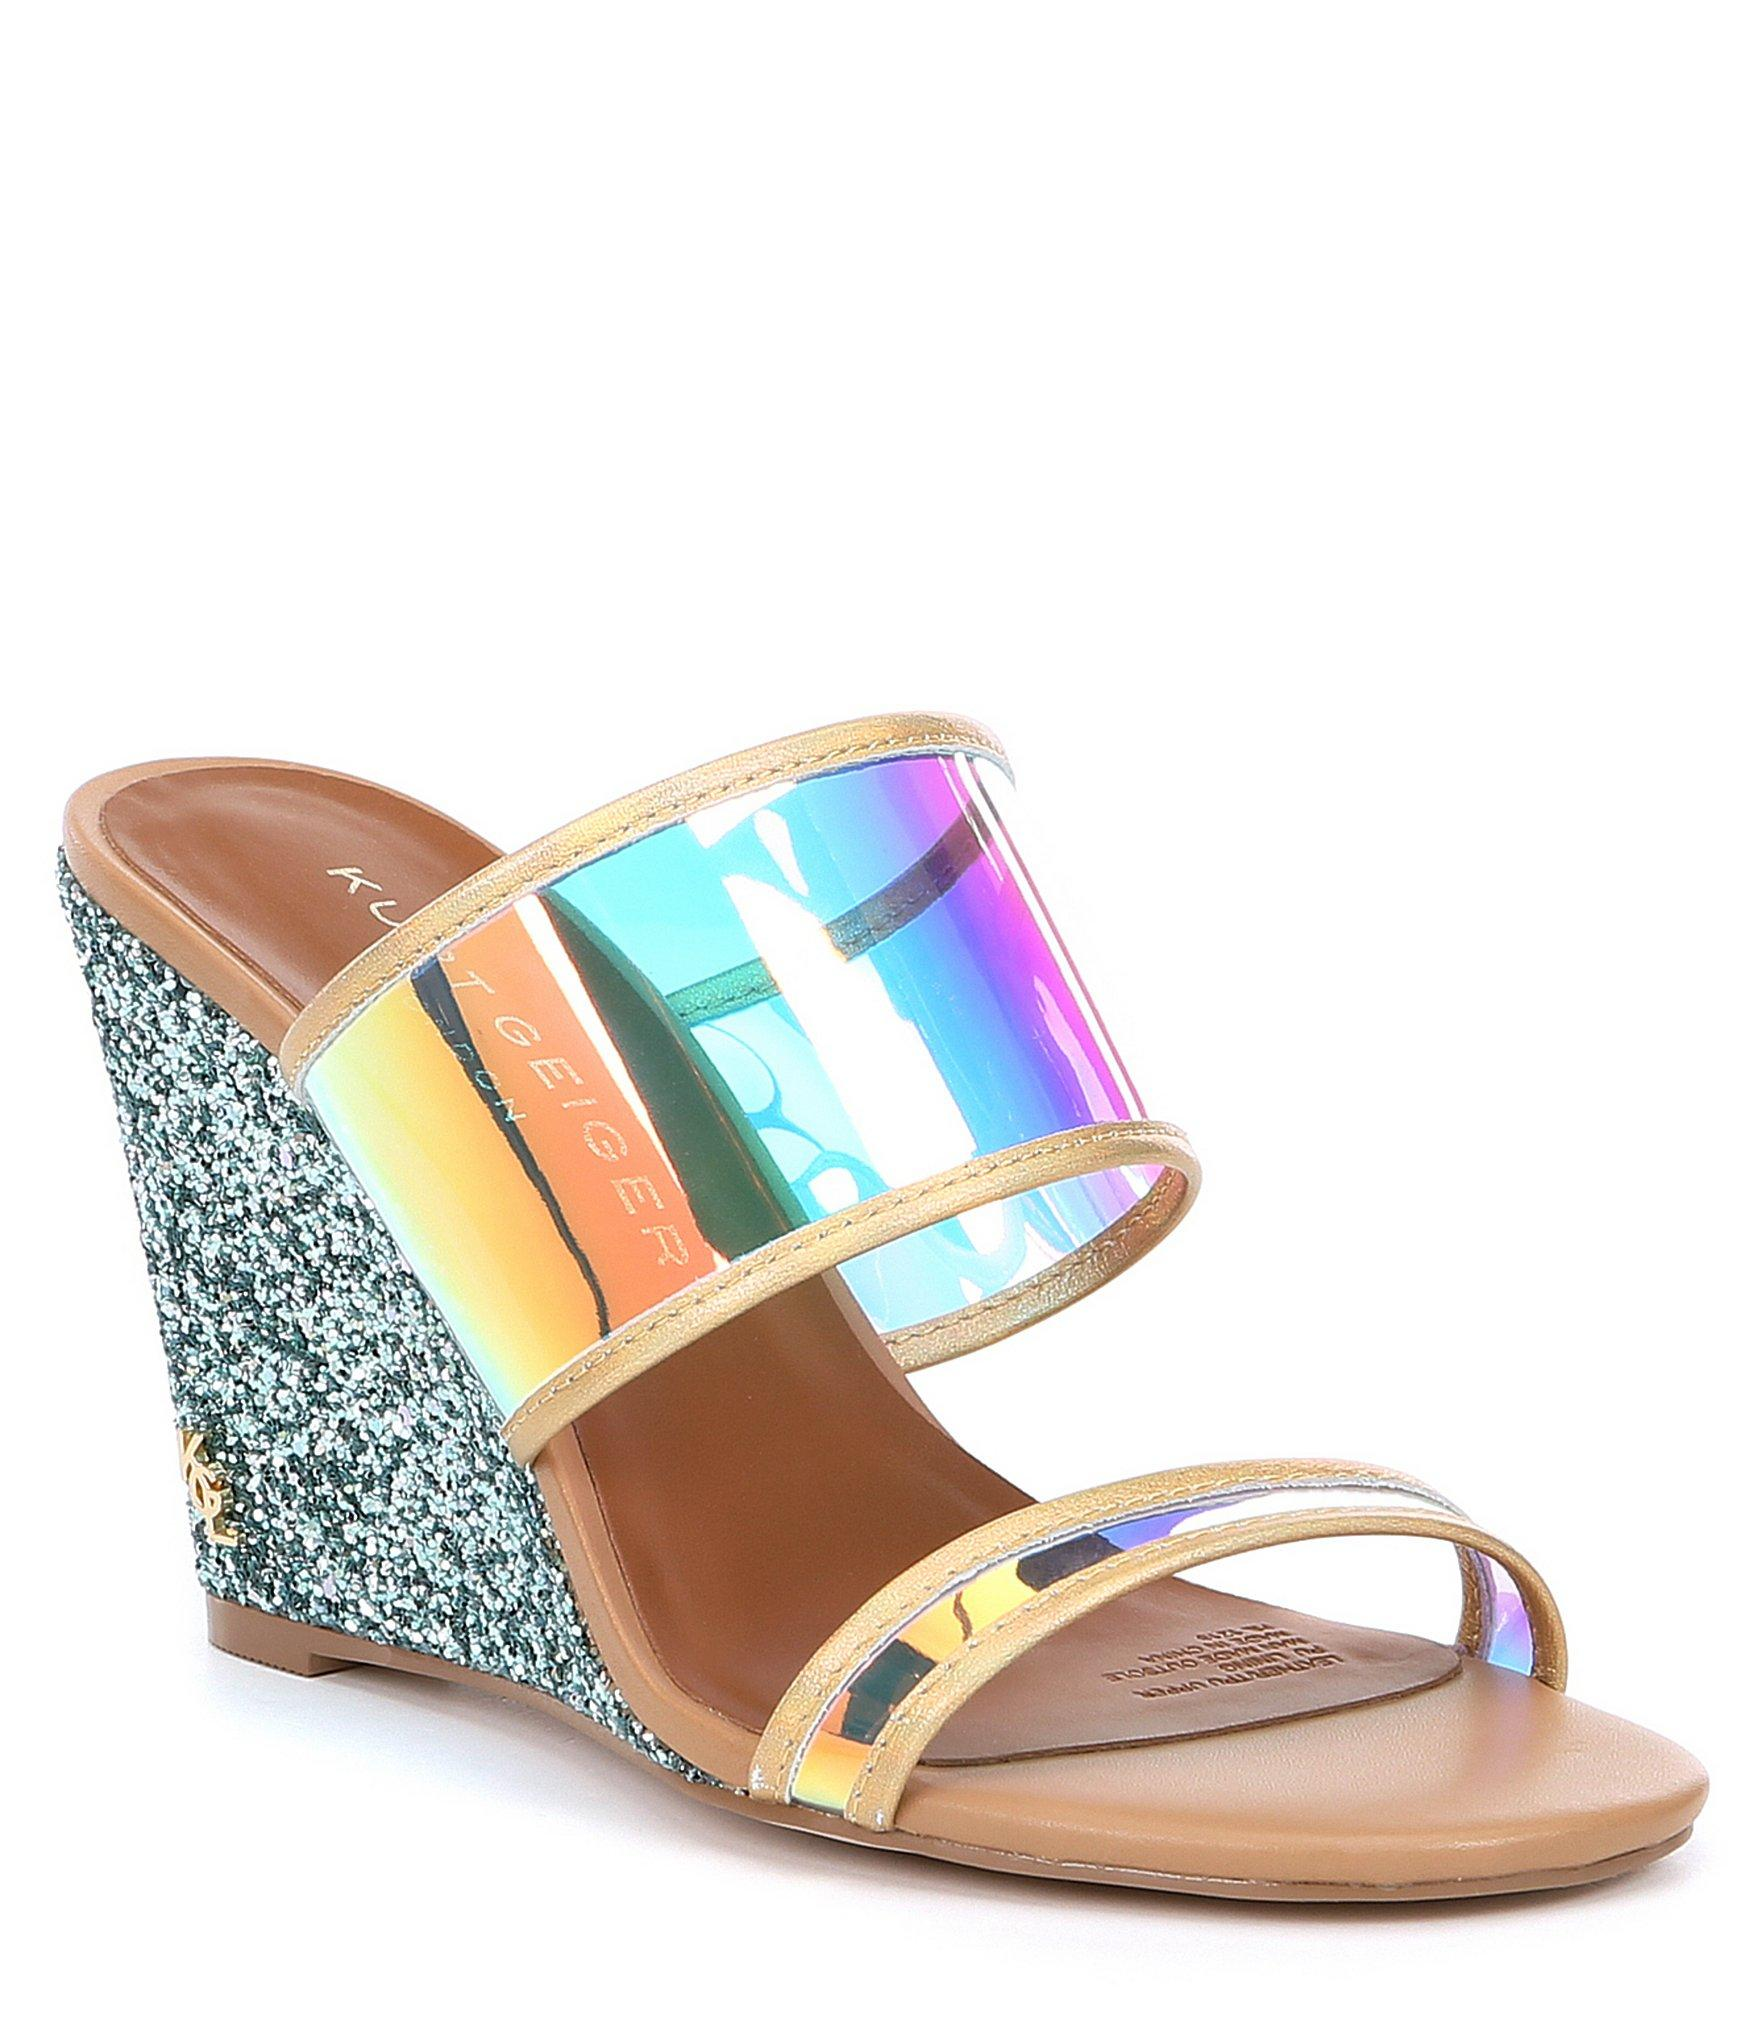 028ce7d4dbc Blue Women's Charing Wedge Slide Sandals